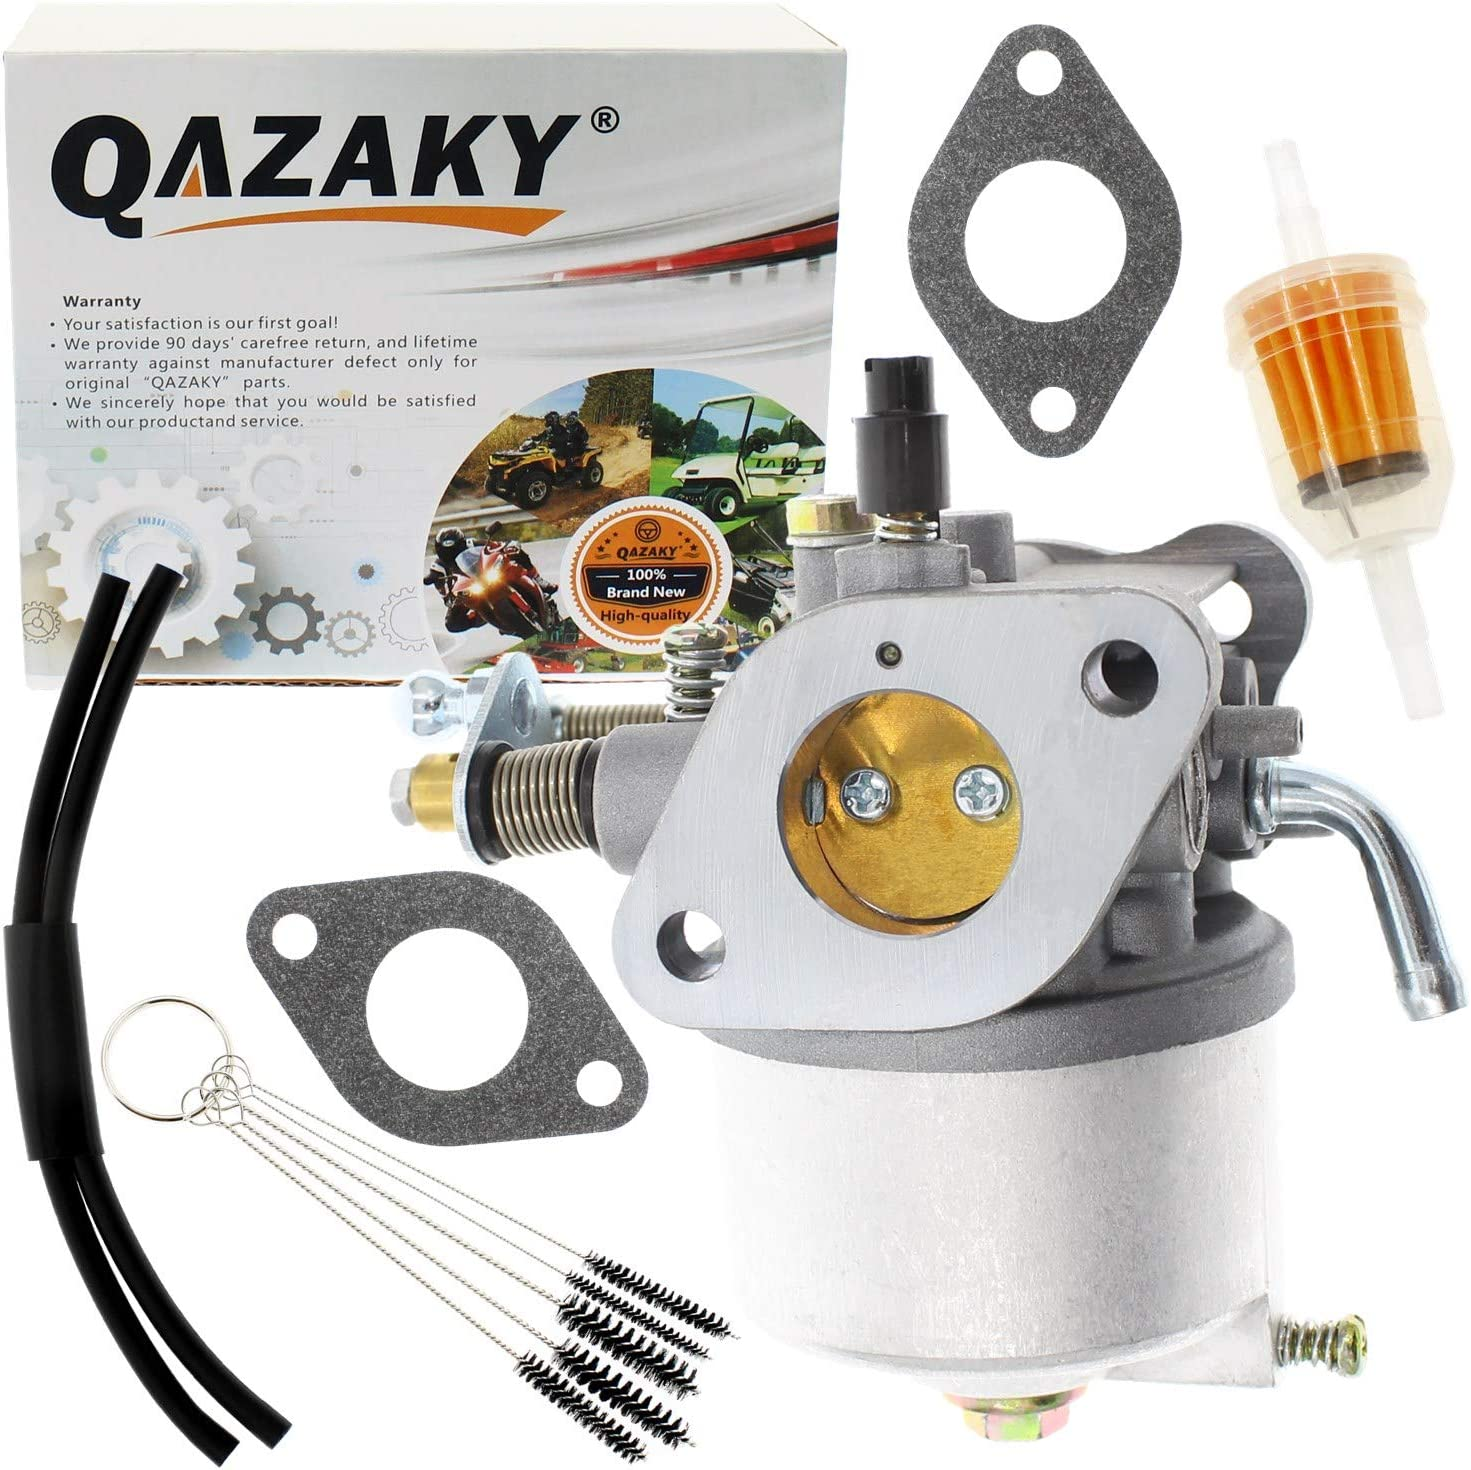 QAZAKY Carburetor Replacement for EZGO Golf Cart 295cc Gas 4-Cycle on